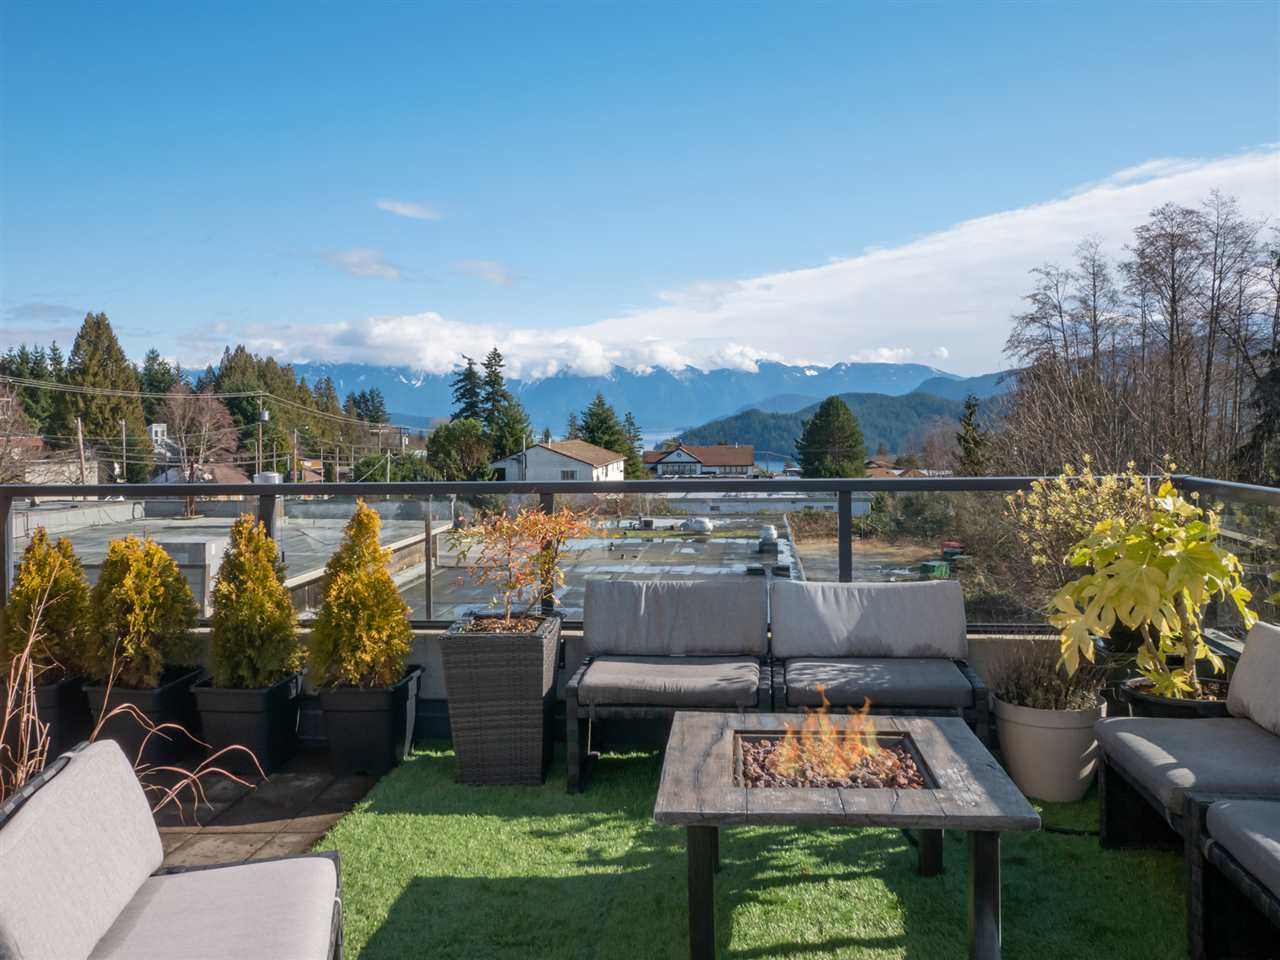 210 210 875 GIBSONS WAY - Gibsons & Area Apartment/Condo for sale, 2 Bedrooms (R2542139) - #27